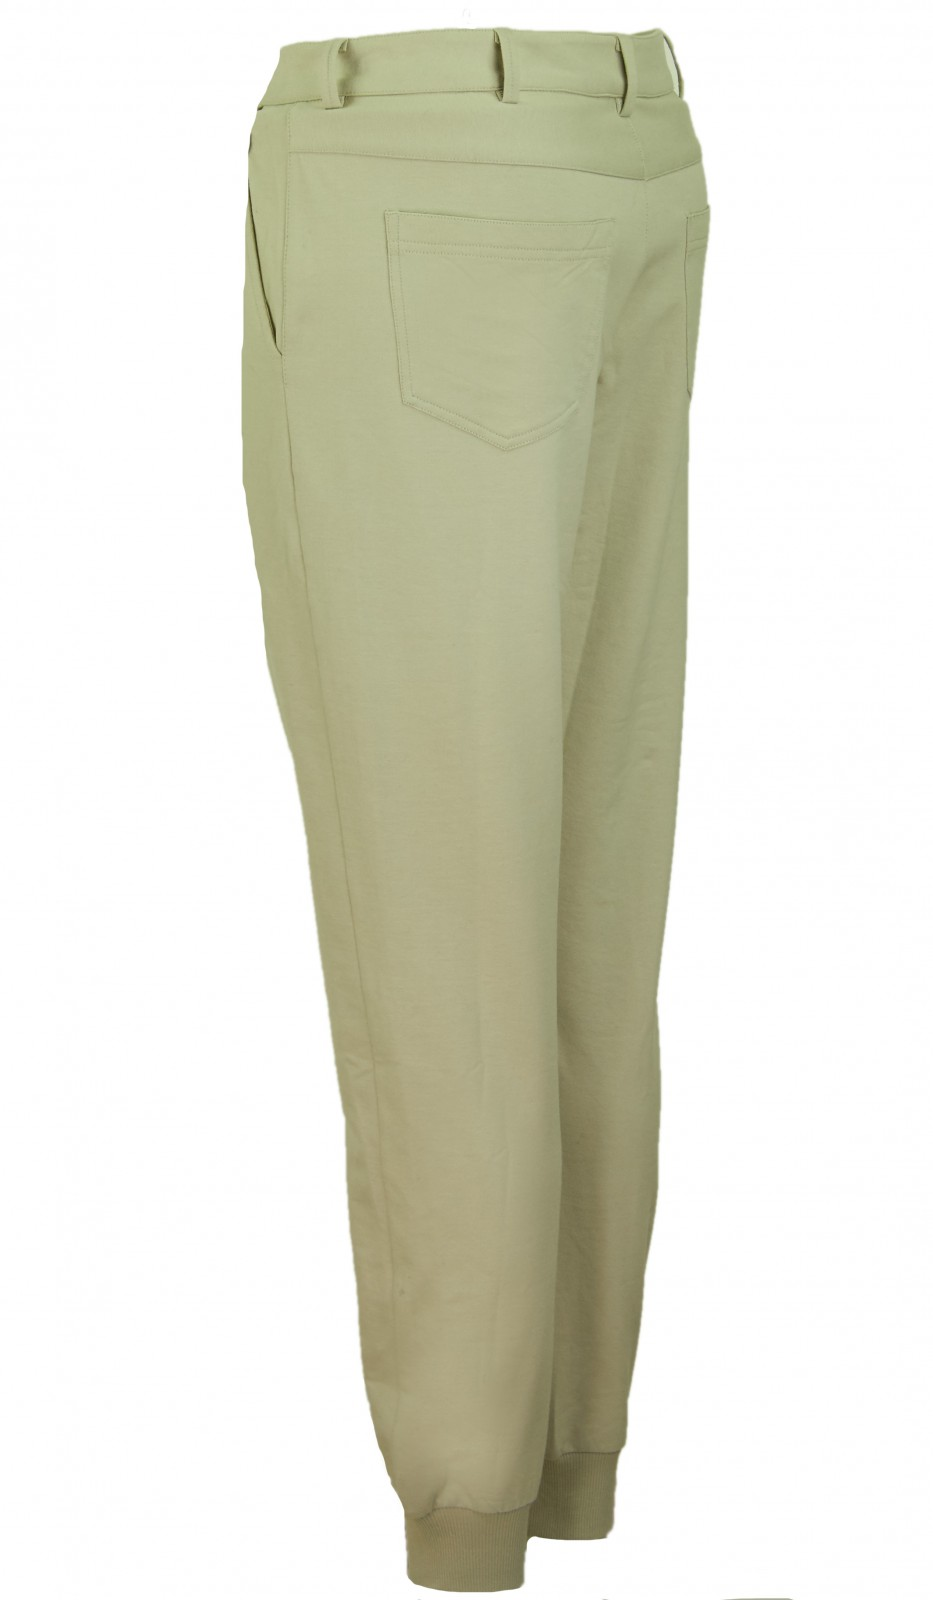 Combinated Cool Pants in Greige